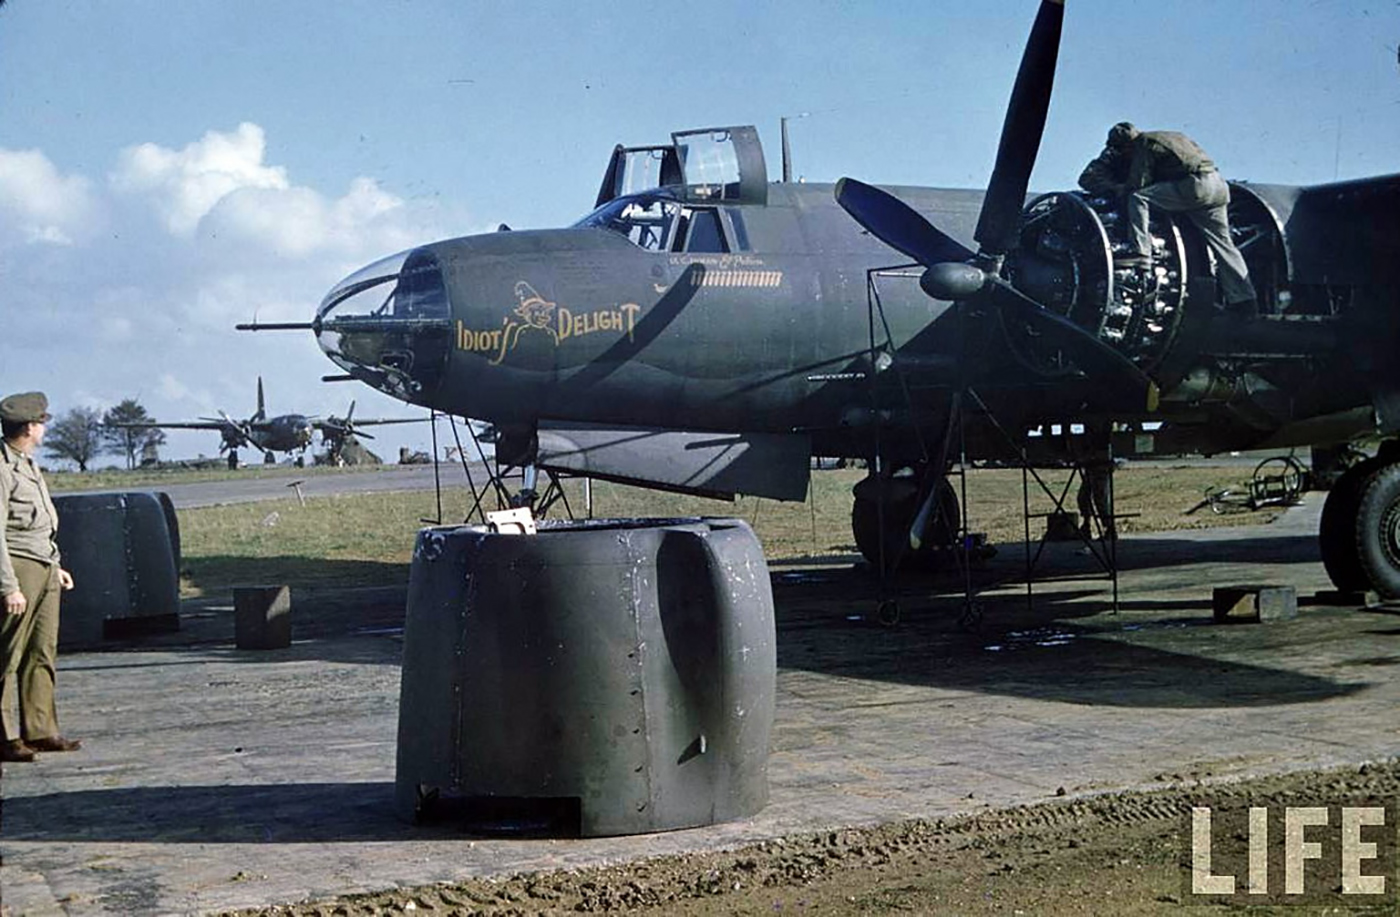 USAAF 41 34947 B 26C Marauder 322BG451BS SSJ Idiots Delight later transfered 386BG554BS RUK 01